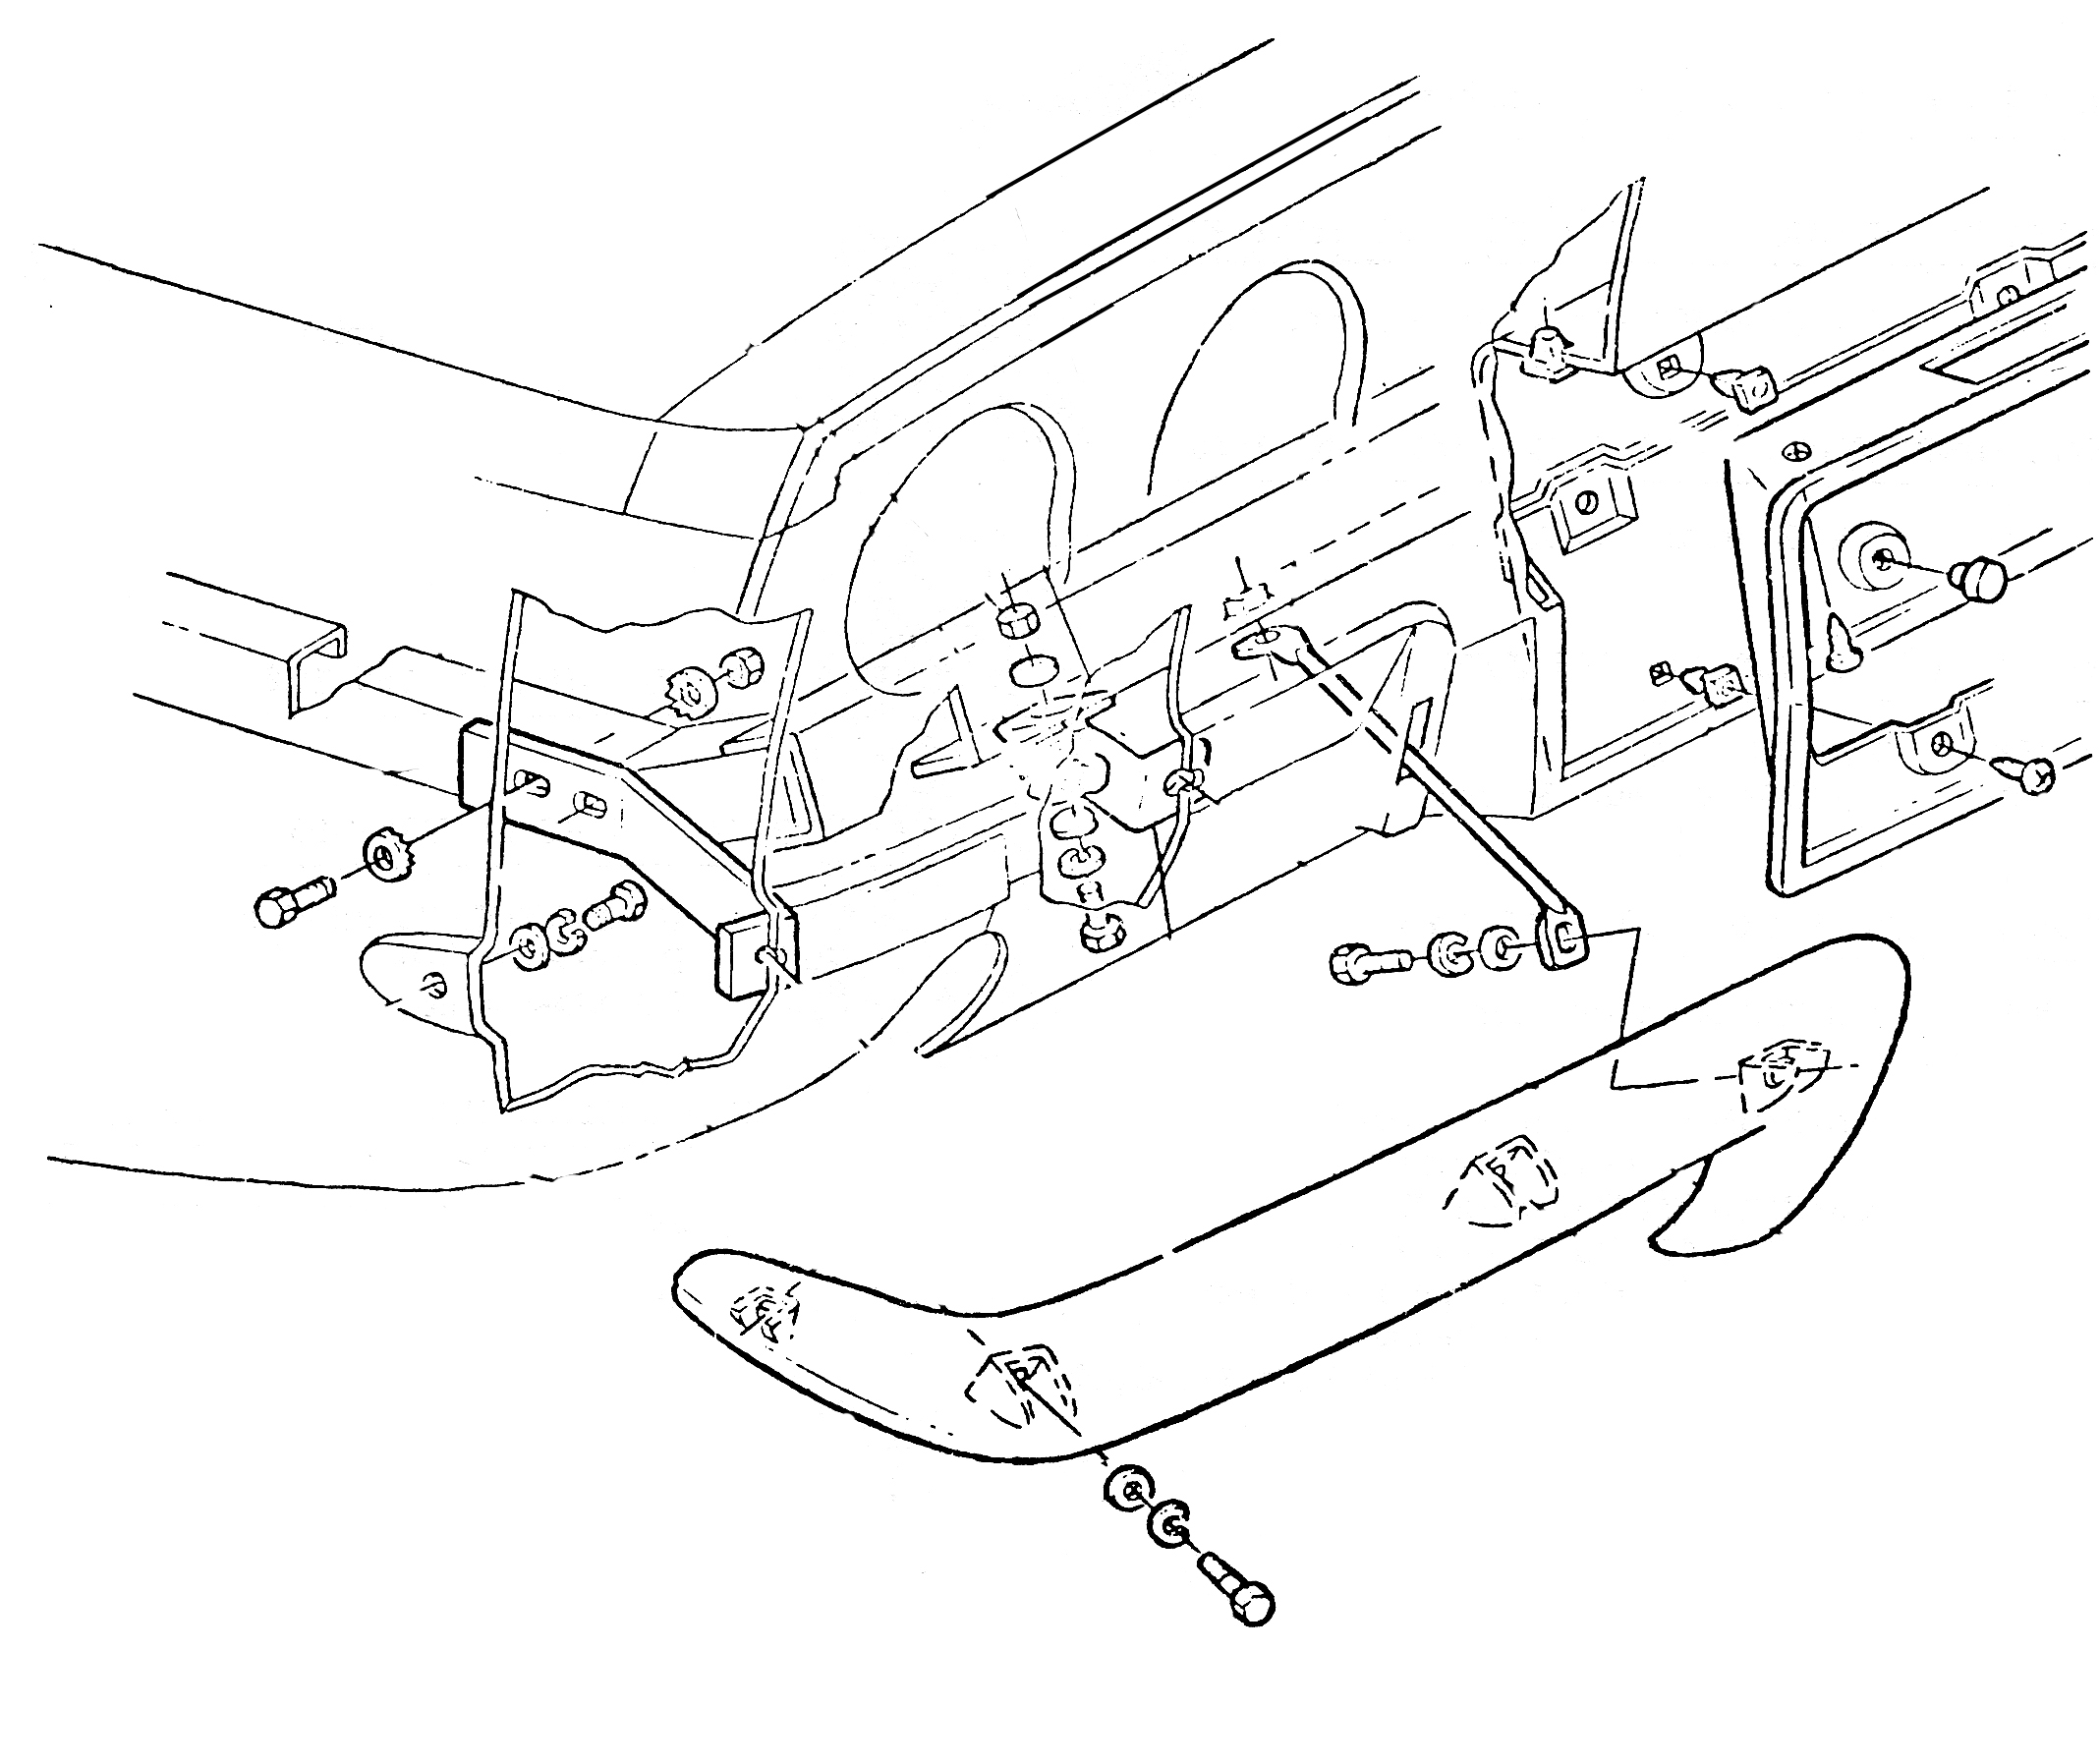 Corvette Parts, Diagrams & Accessories for C1, C2 and C3